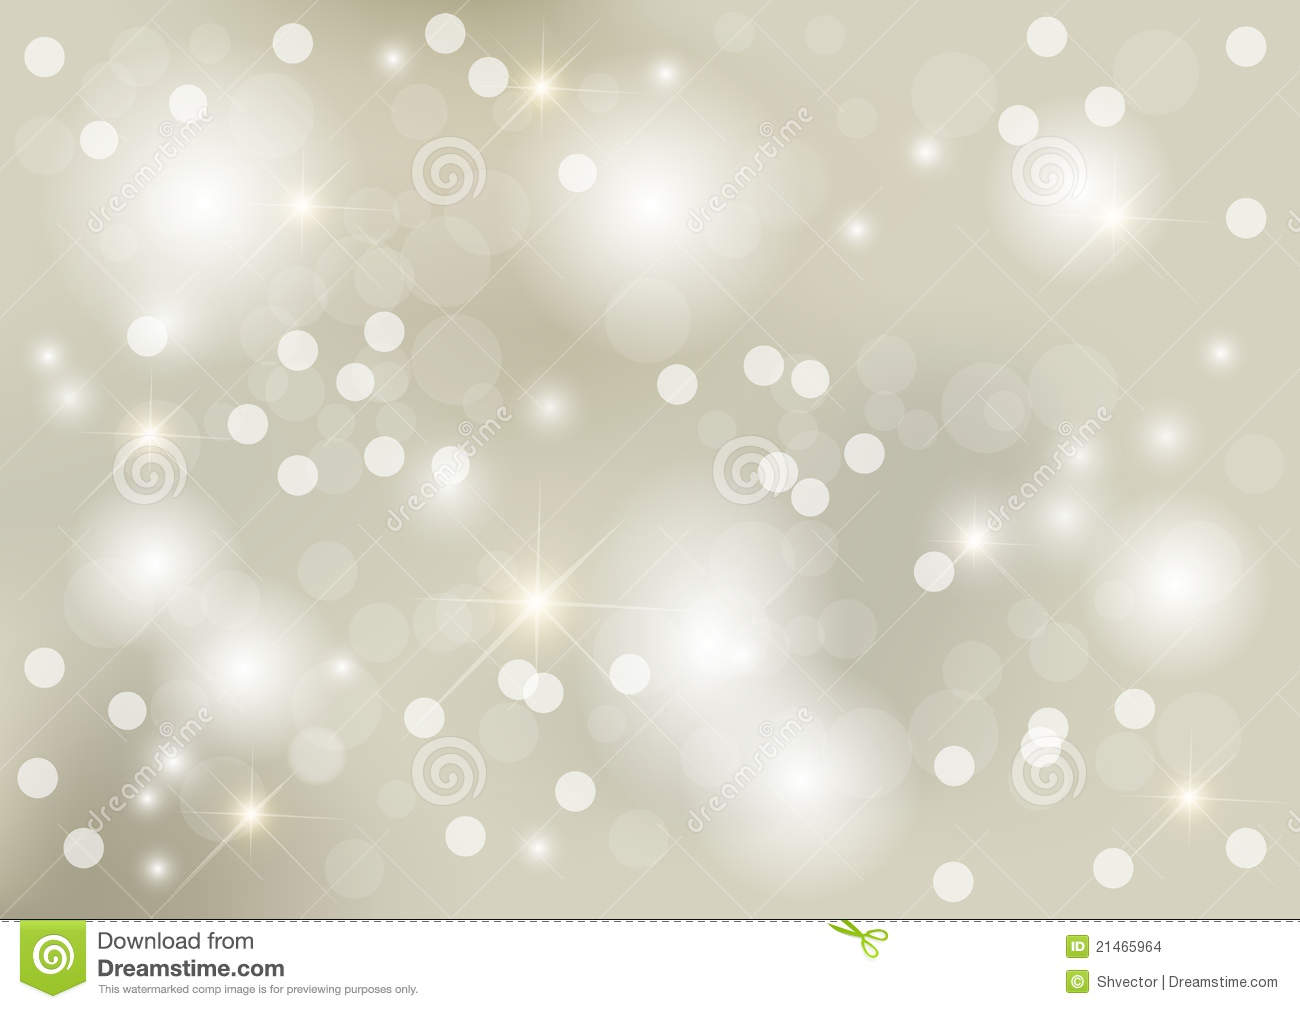 Bright Silver Dot Background Stock Images - Image: 21465964